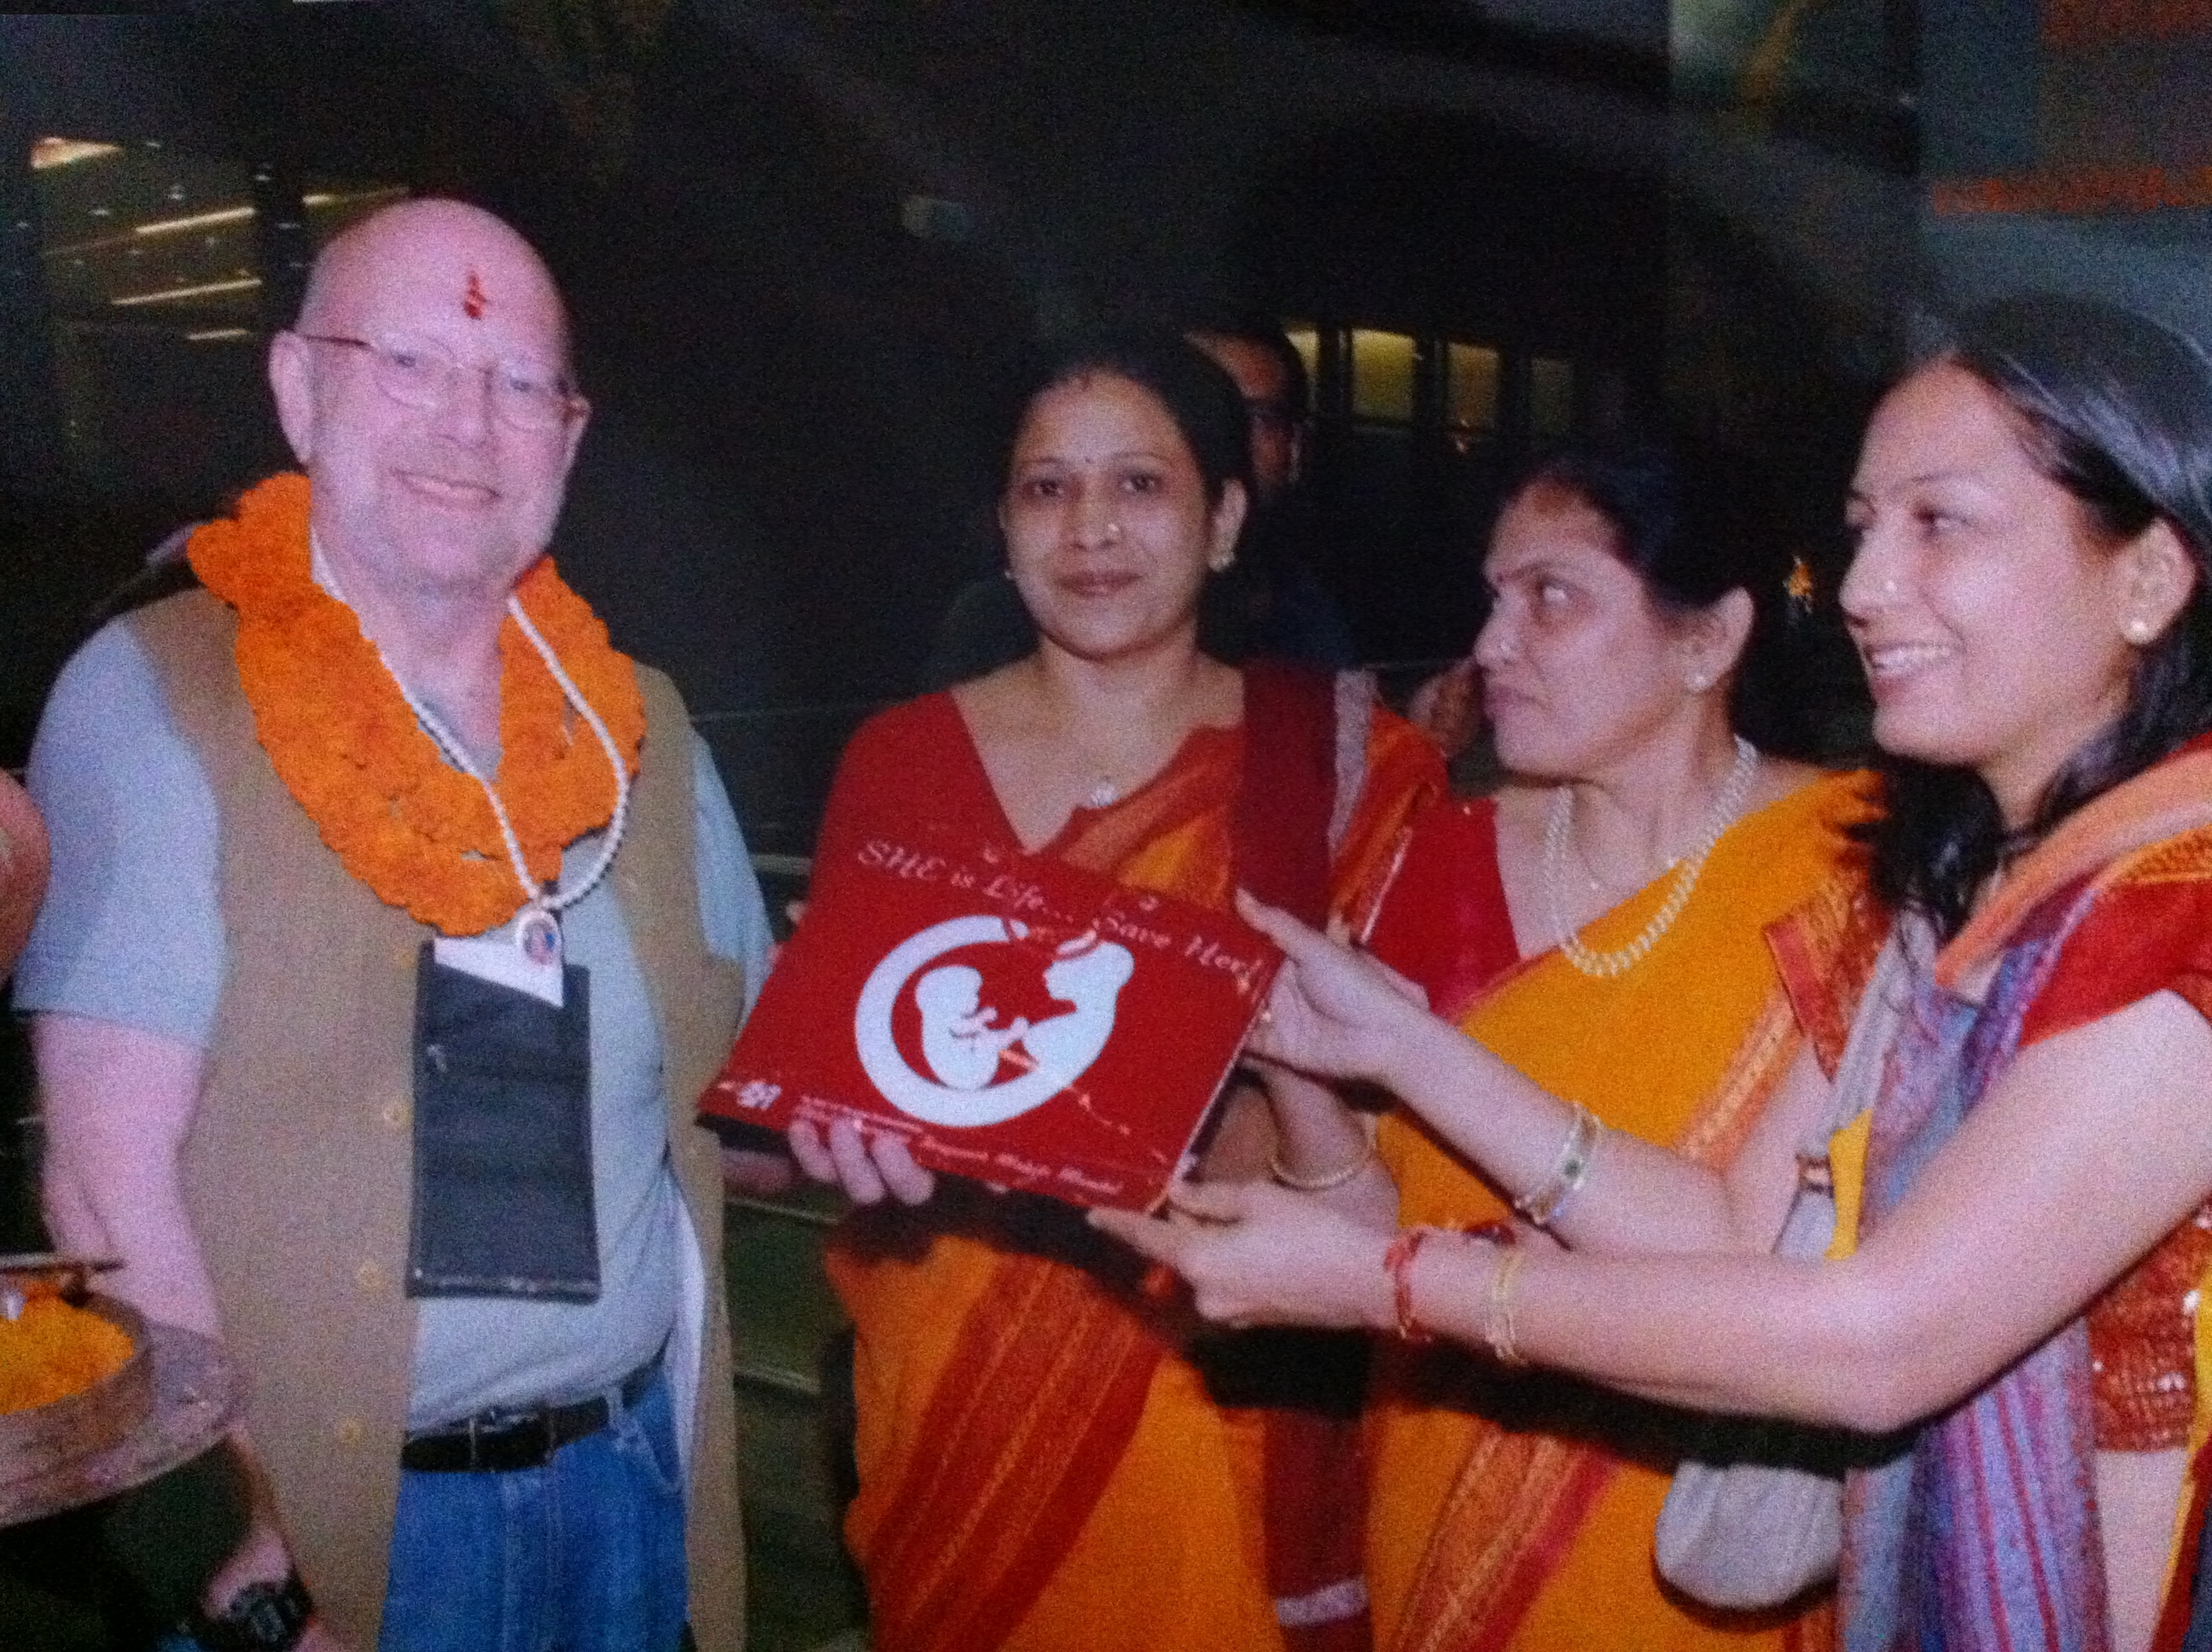 http://www.herenow4u.net/fileadmin/v3media/pics/organisations/Jain_Education_and_Research_Foundation/2010-11_Dr._Nathan_Katz_Visits_India/101122_Dr._Nathan_Katz_334.JPG